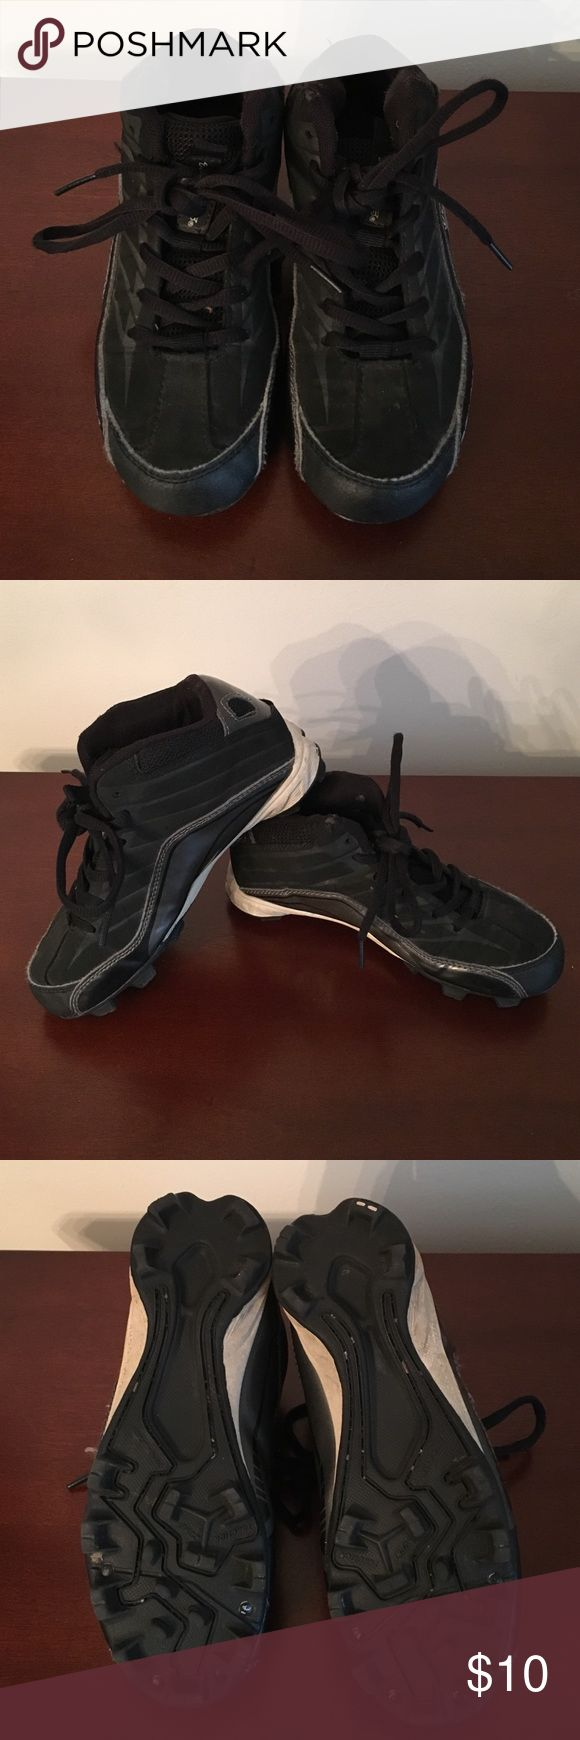 ⚾️Kids Baseball/Softball Cleats⚾️ Excellent condition Unisex Rawlings kids cleats.  Worn for one season of softball.  One small worn spot on left shoe (see picture).  Lots of life left in these! Rawlings Shoes Sneakers